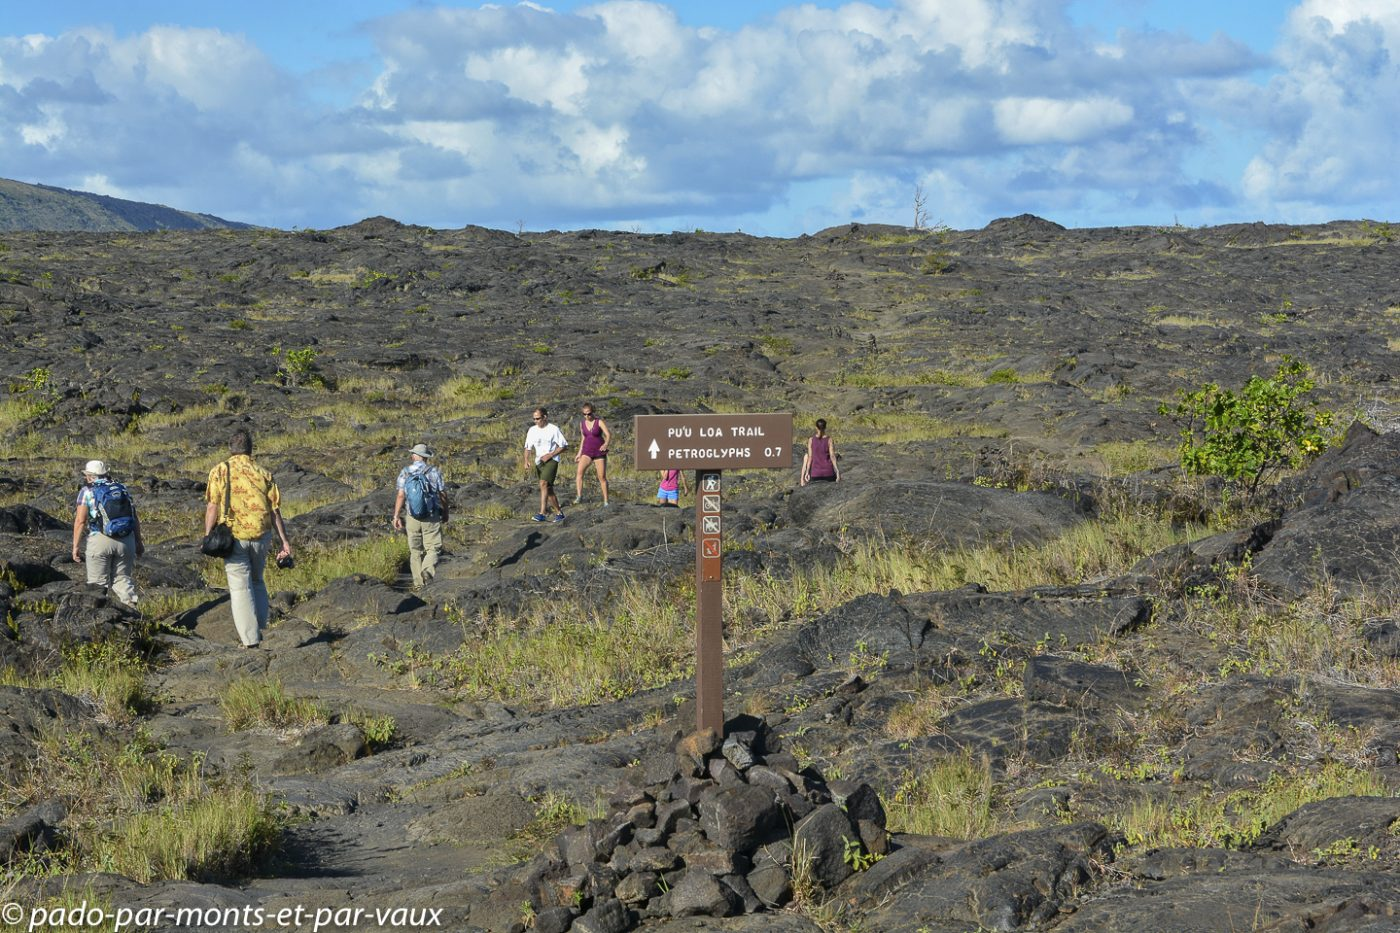 Big Island - Chain of craters road